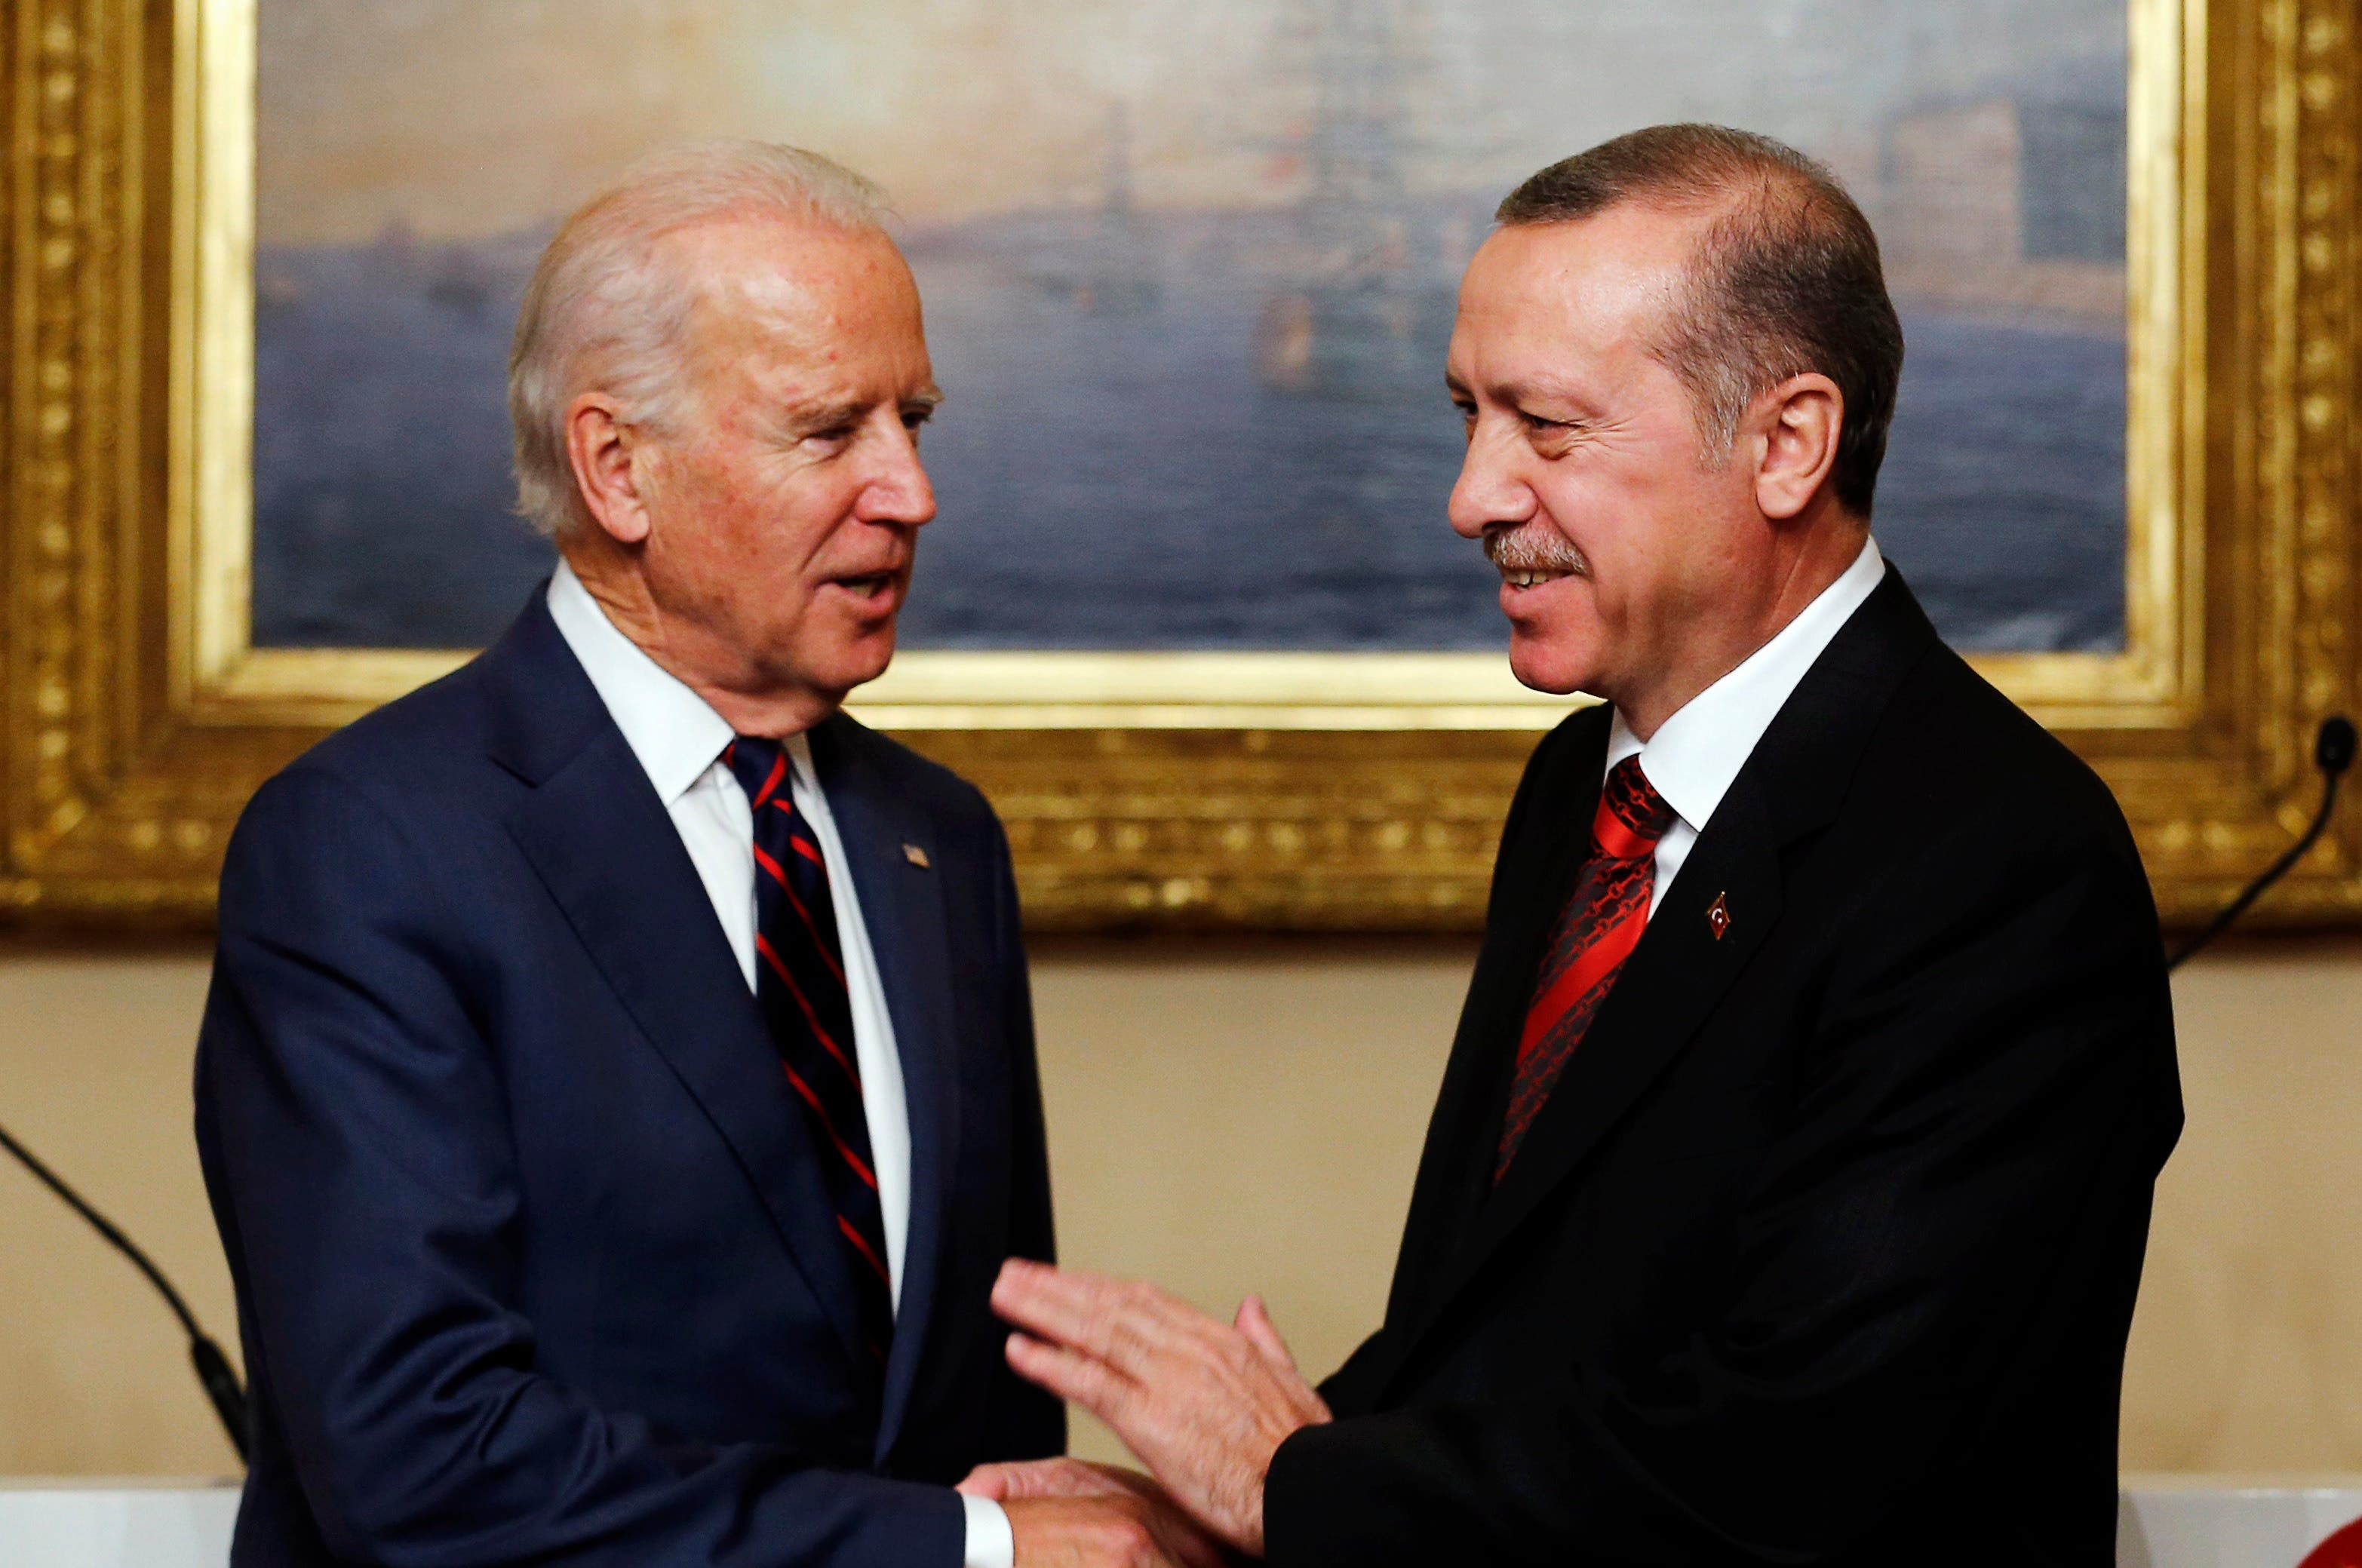 Then-US Vice President Joe Biden (L) meets with Turkey's President Tayyip Erdogan at Beylerbeyi Palace in Istanbul November 22, 2014. (Reuters)